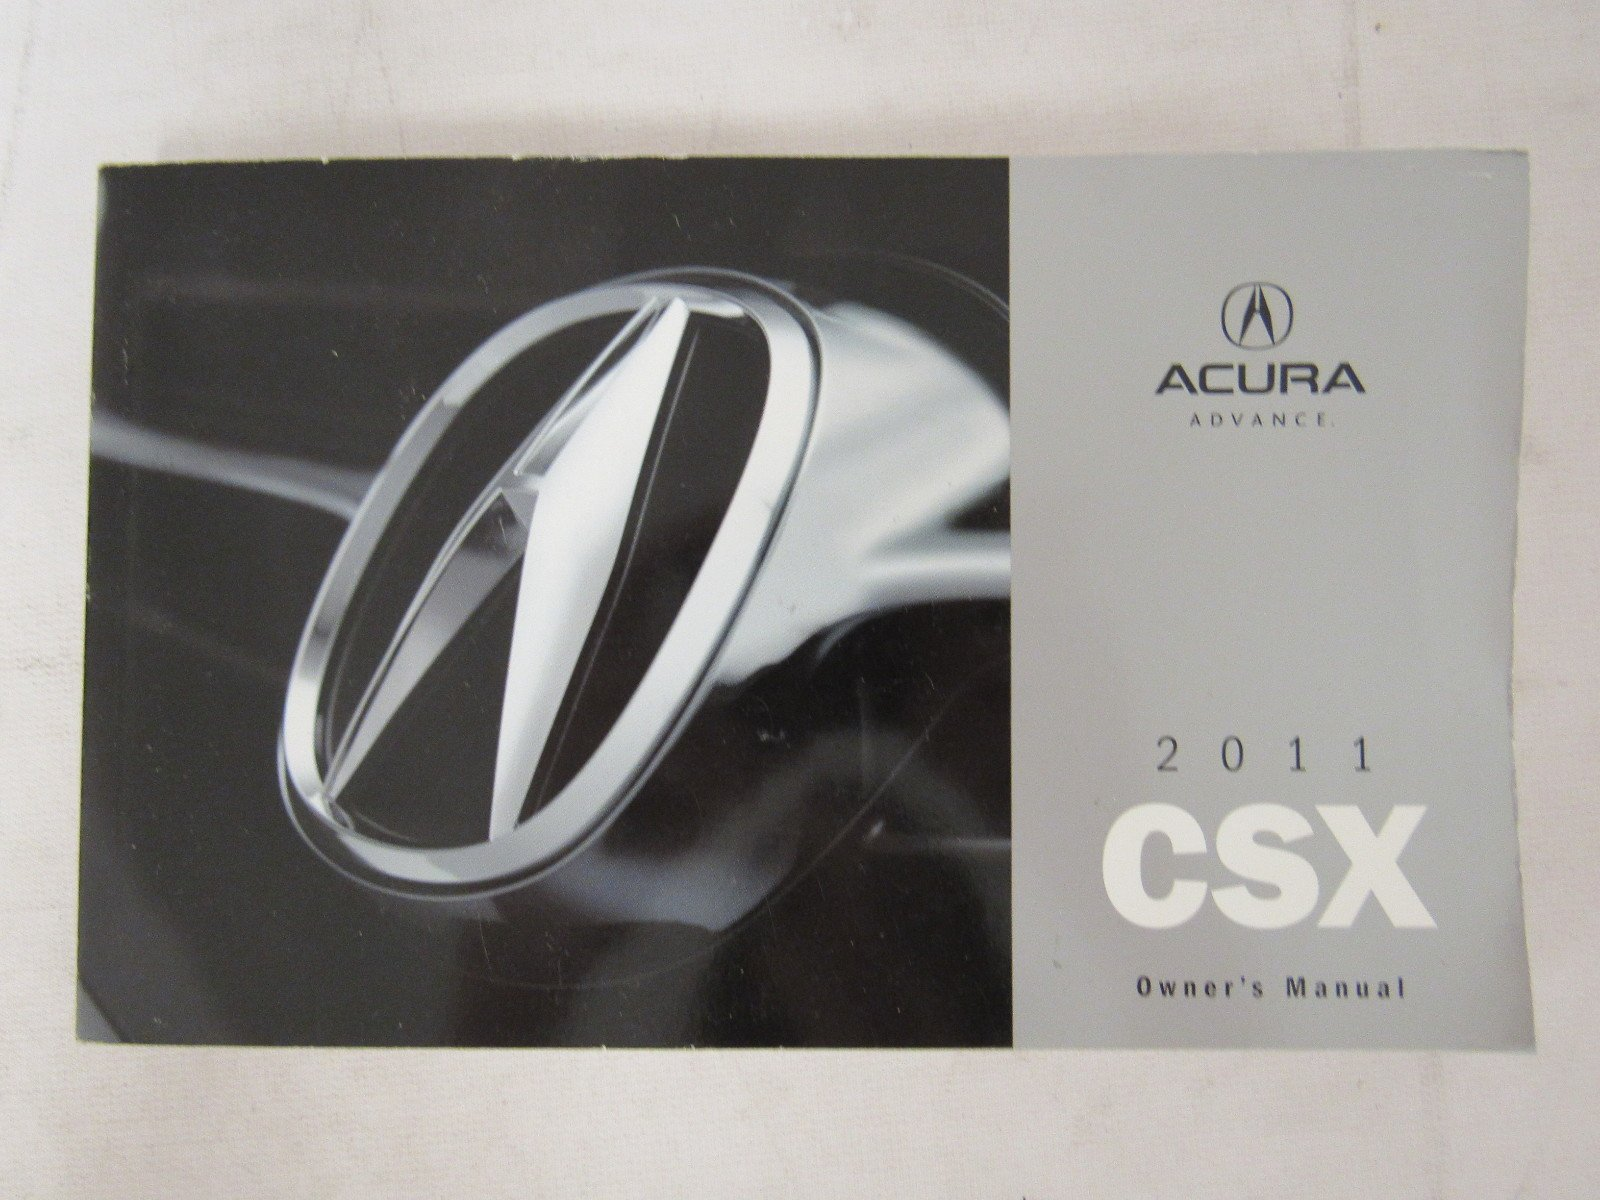 2011 acura csx owners manual guide book acura amazon com books rh amazon com 2011 Acura ILX 2011 acura csx service manual